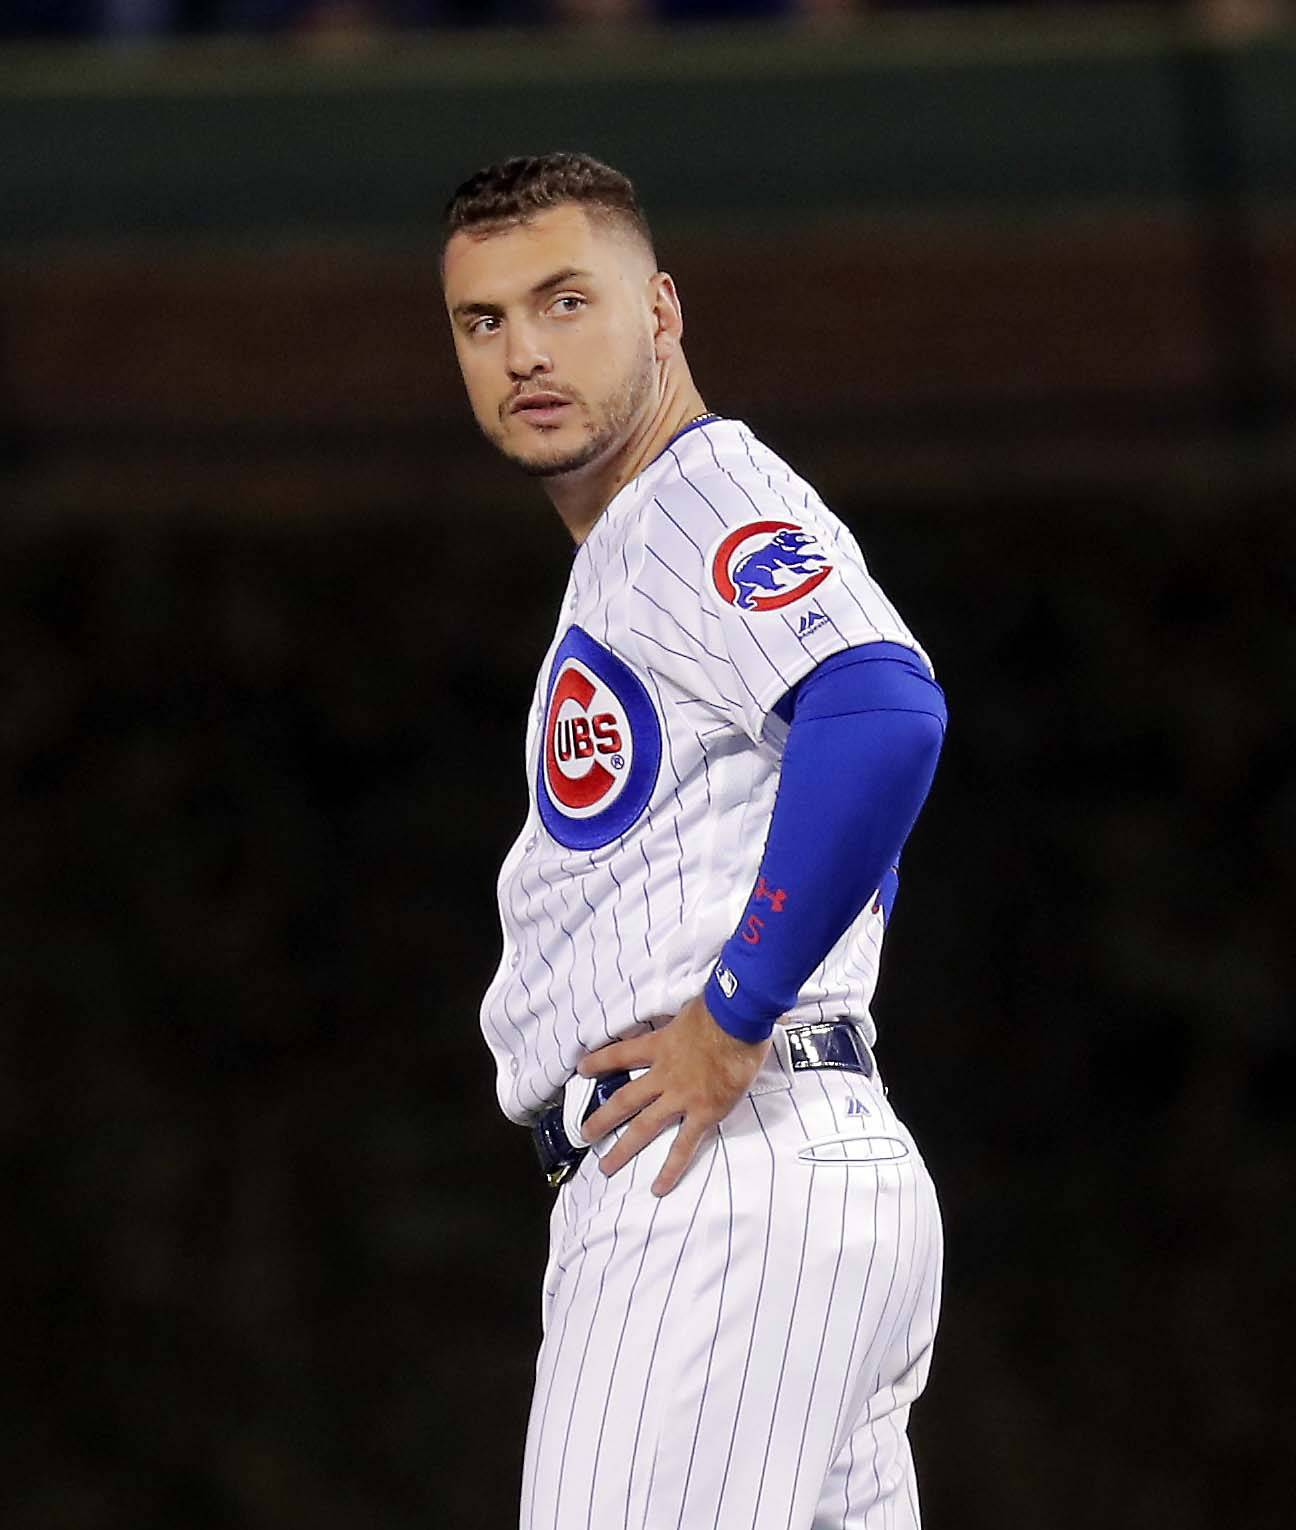 Chicago Cubs center fielder Albert Almora Jr. had 65 starts during the regular season. He hopes to get the change to become an everyday player next season.